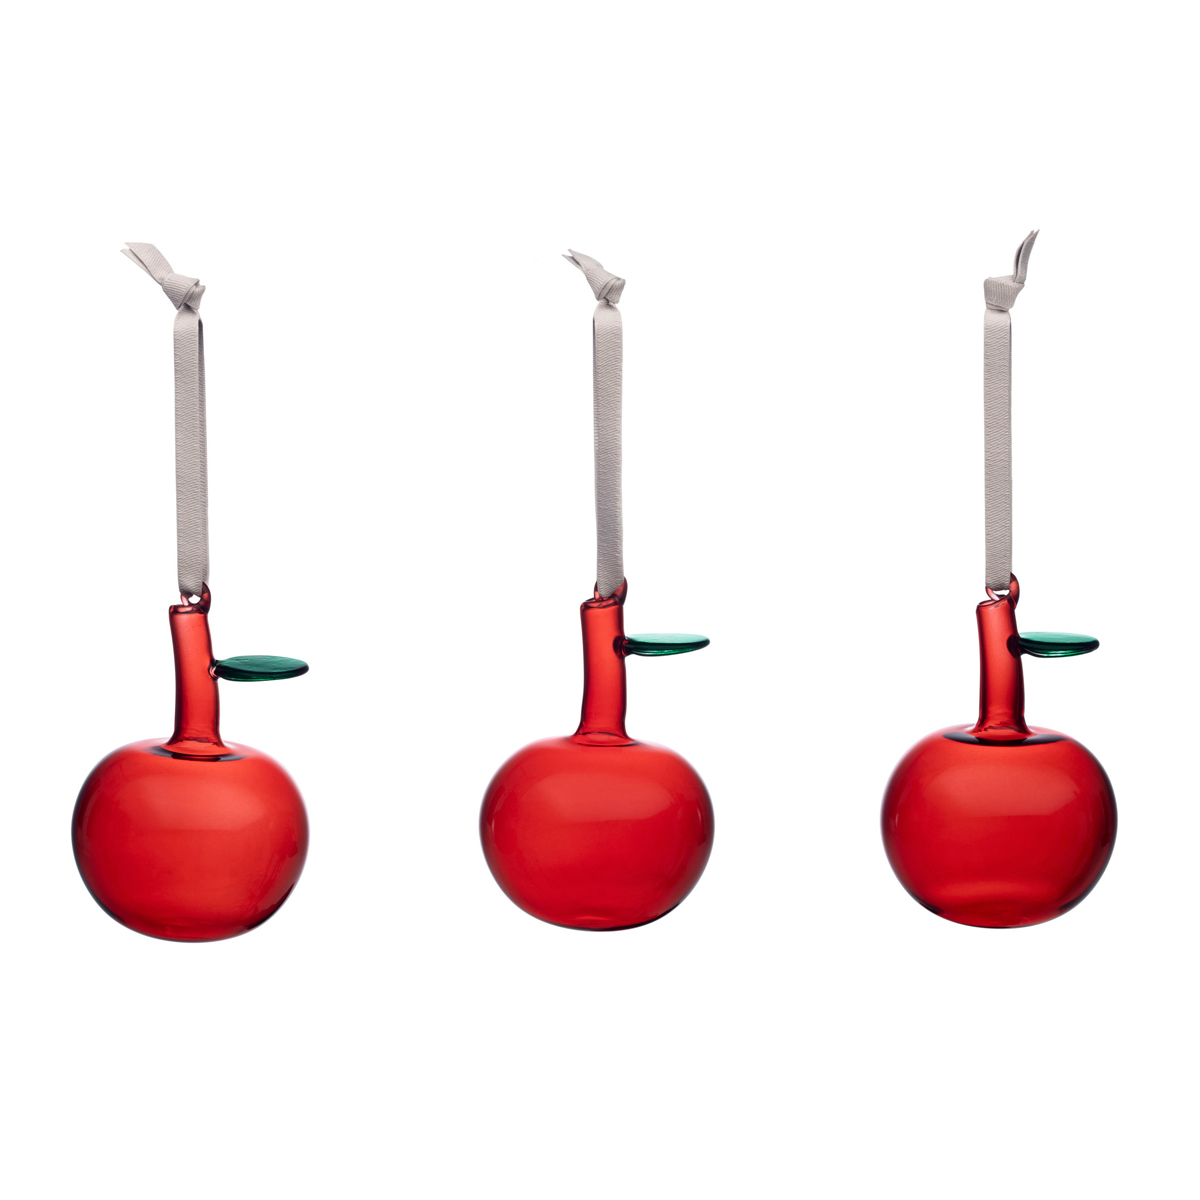 Iittala Iittala Glass Apple Set of 3 Red